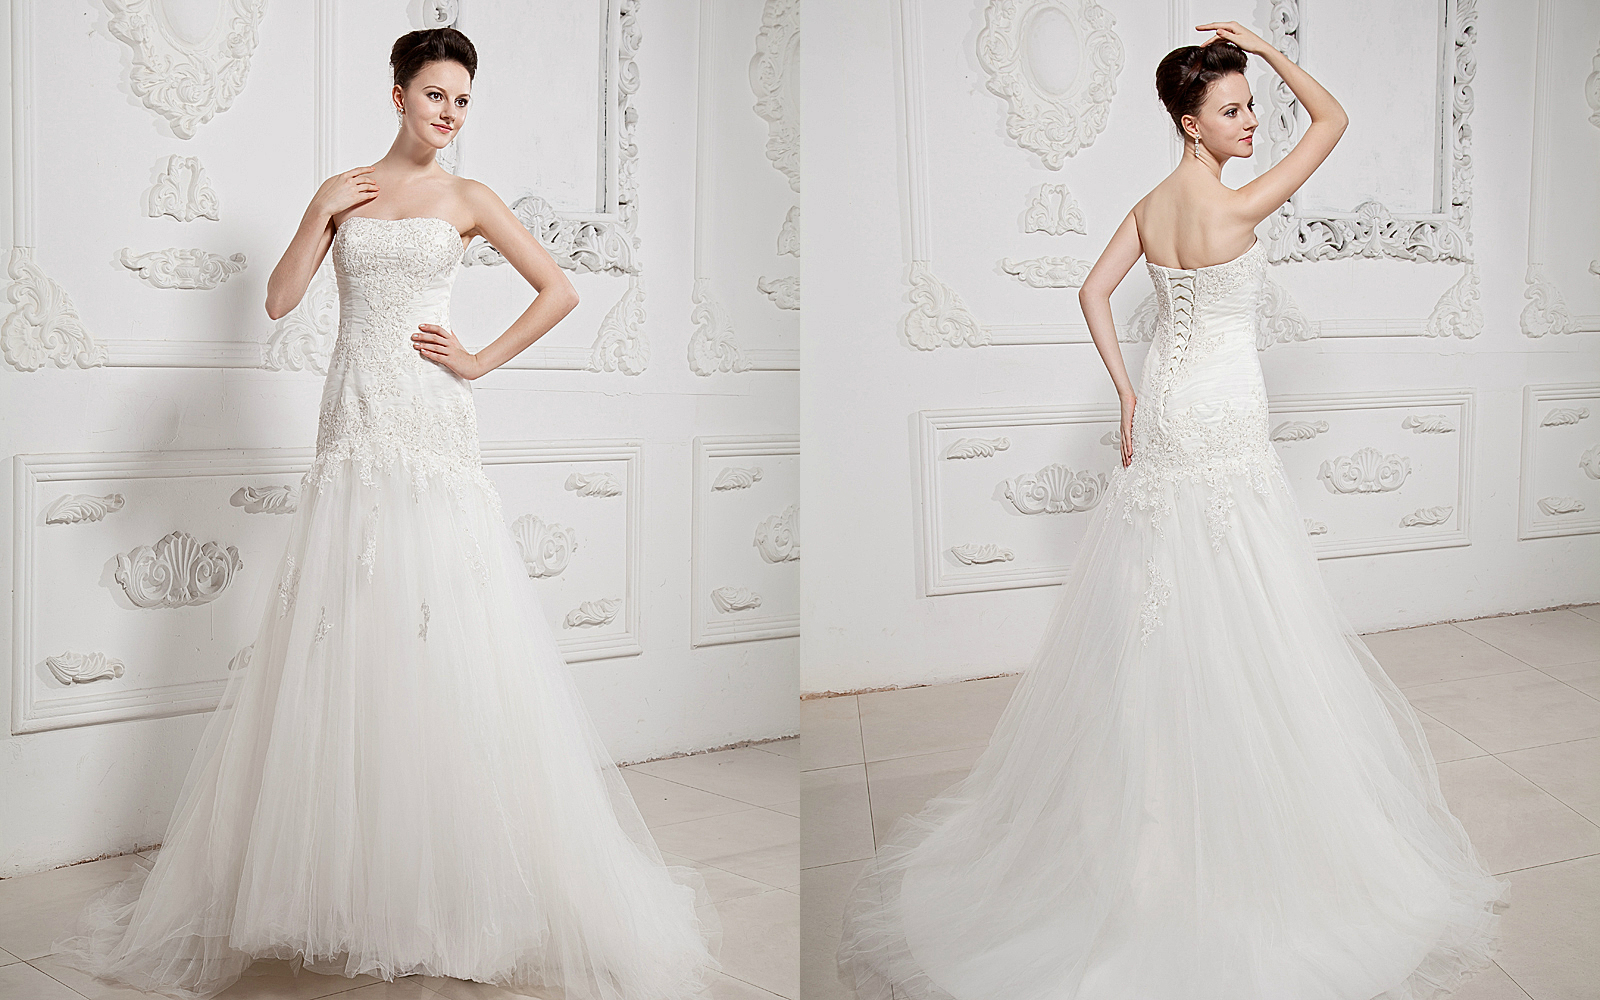 Wedding Dresses Under $100 In  : Wedding dresses under at promtimes